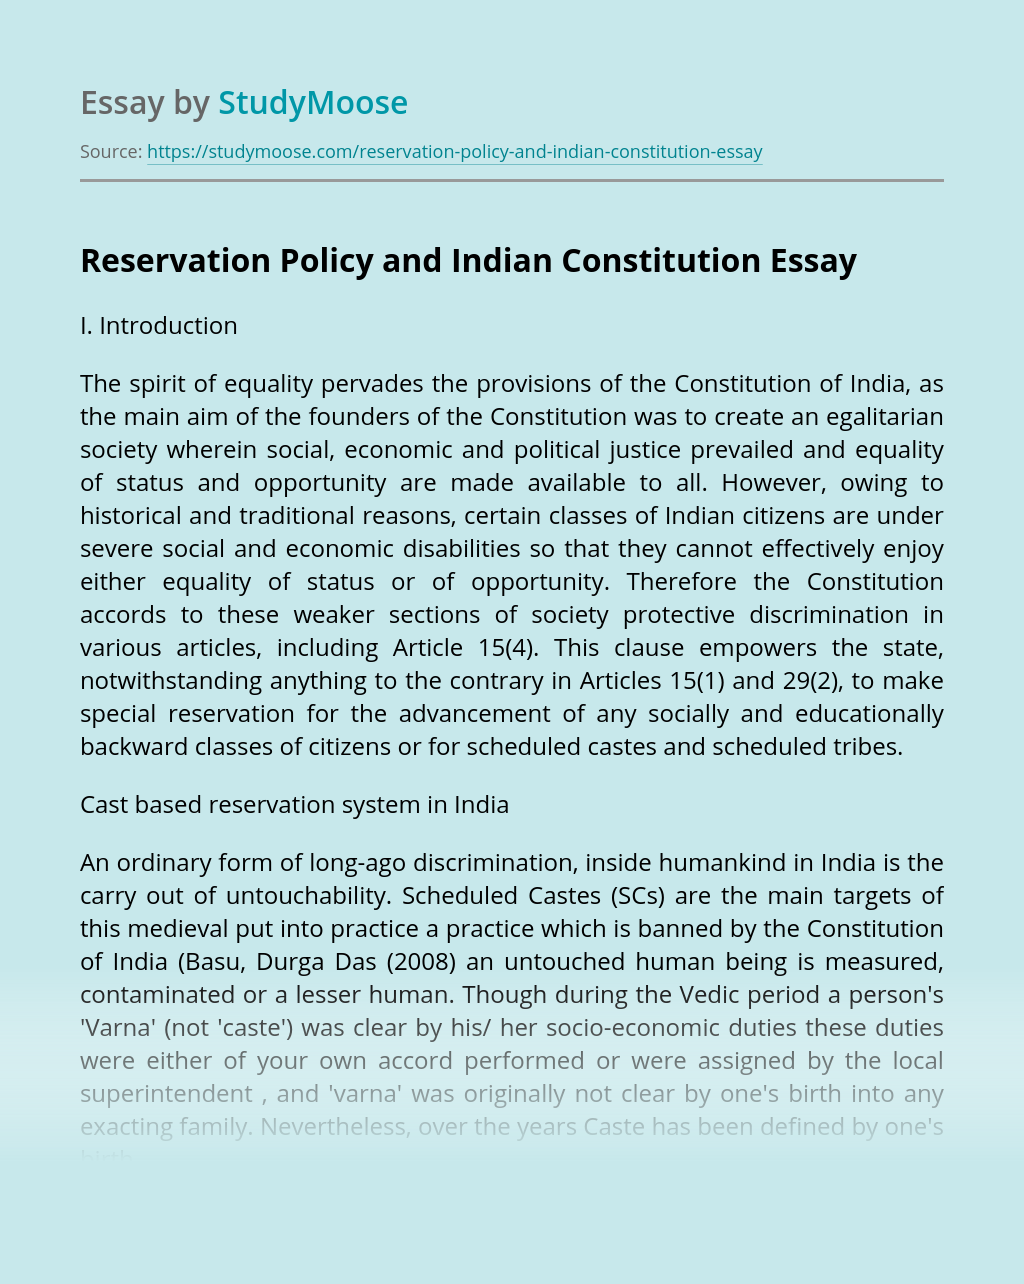 Reservation Policy and Indian Constitution